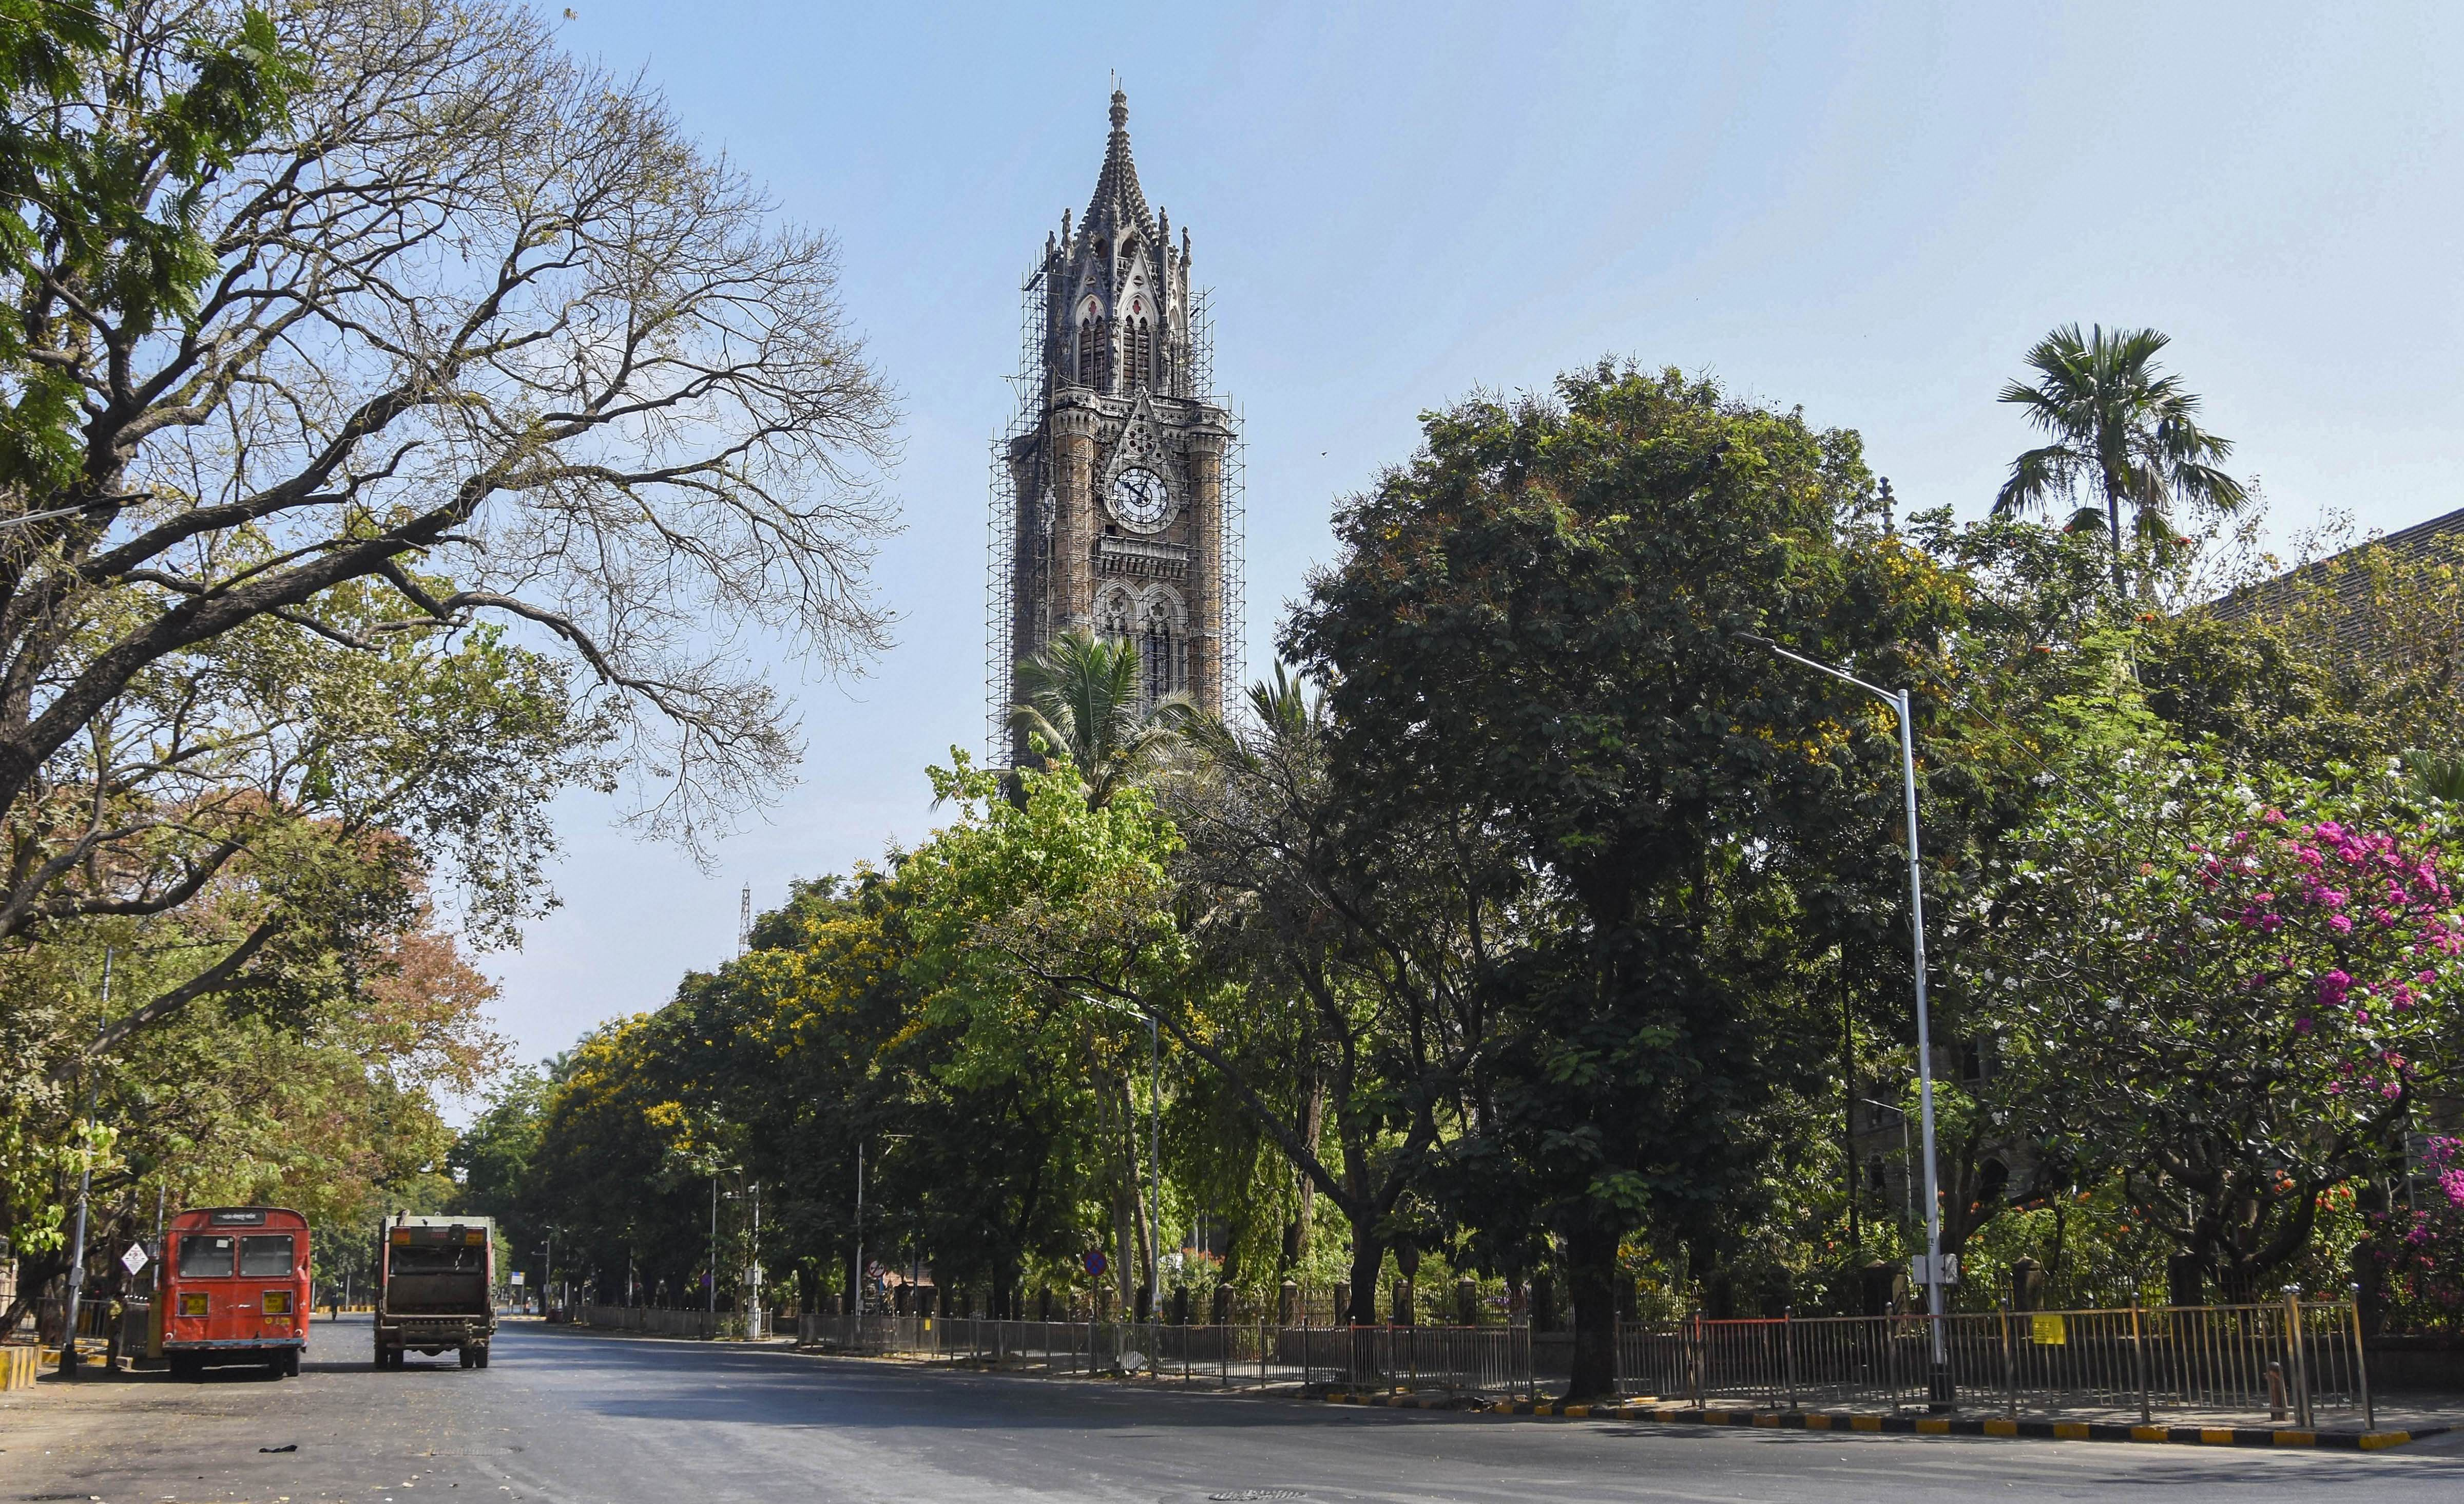 A deserted street outside the BMC headquarters at 10am, a rare sight in rush hour, during the nationwide lockdown imposed in a bid to contain the spread of Covid-19, in Mumbai, Monday, April 6, 2020